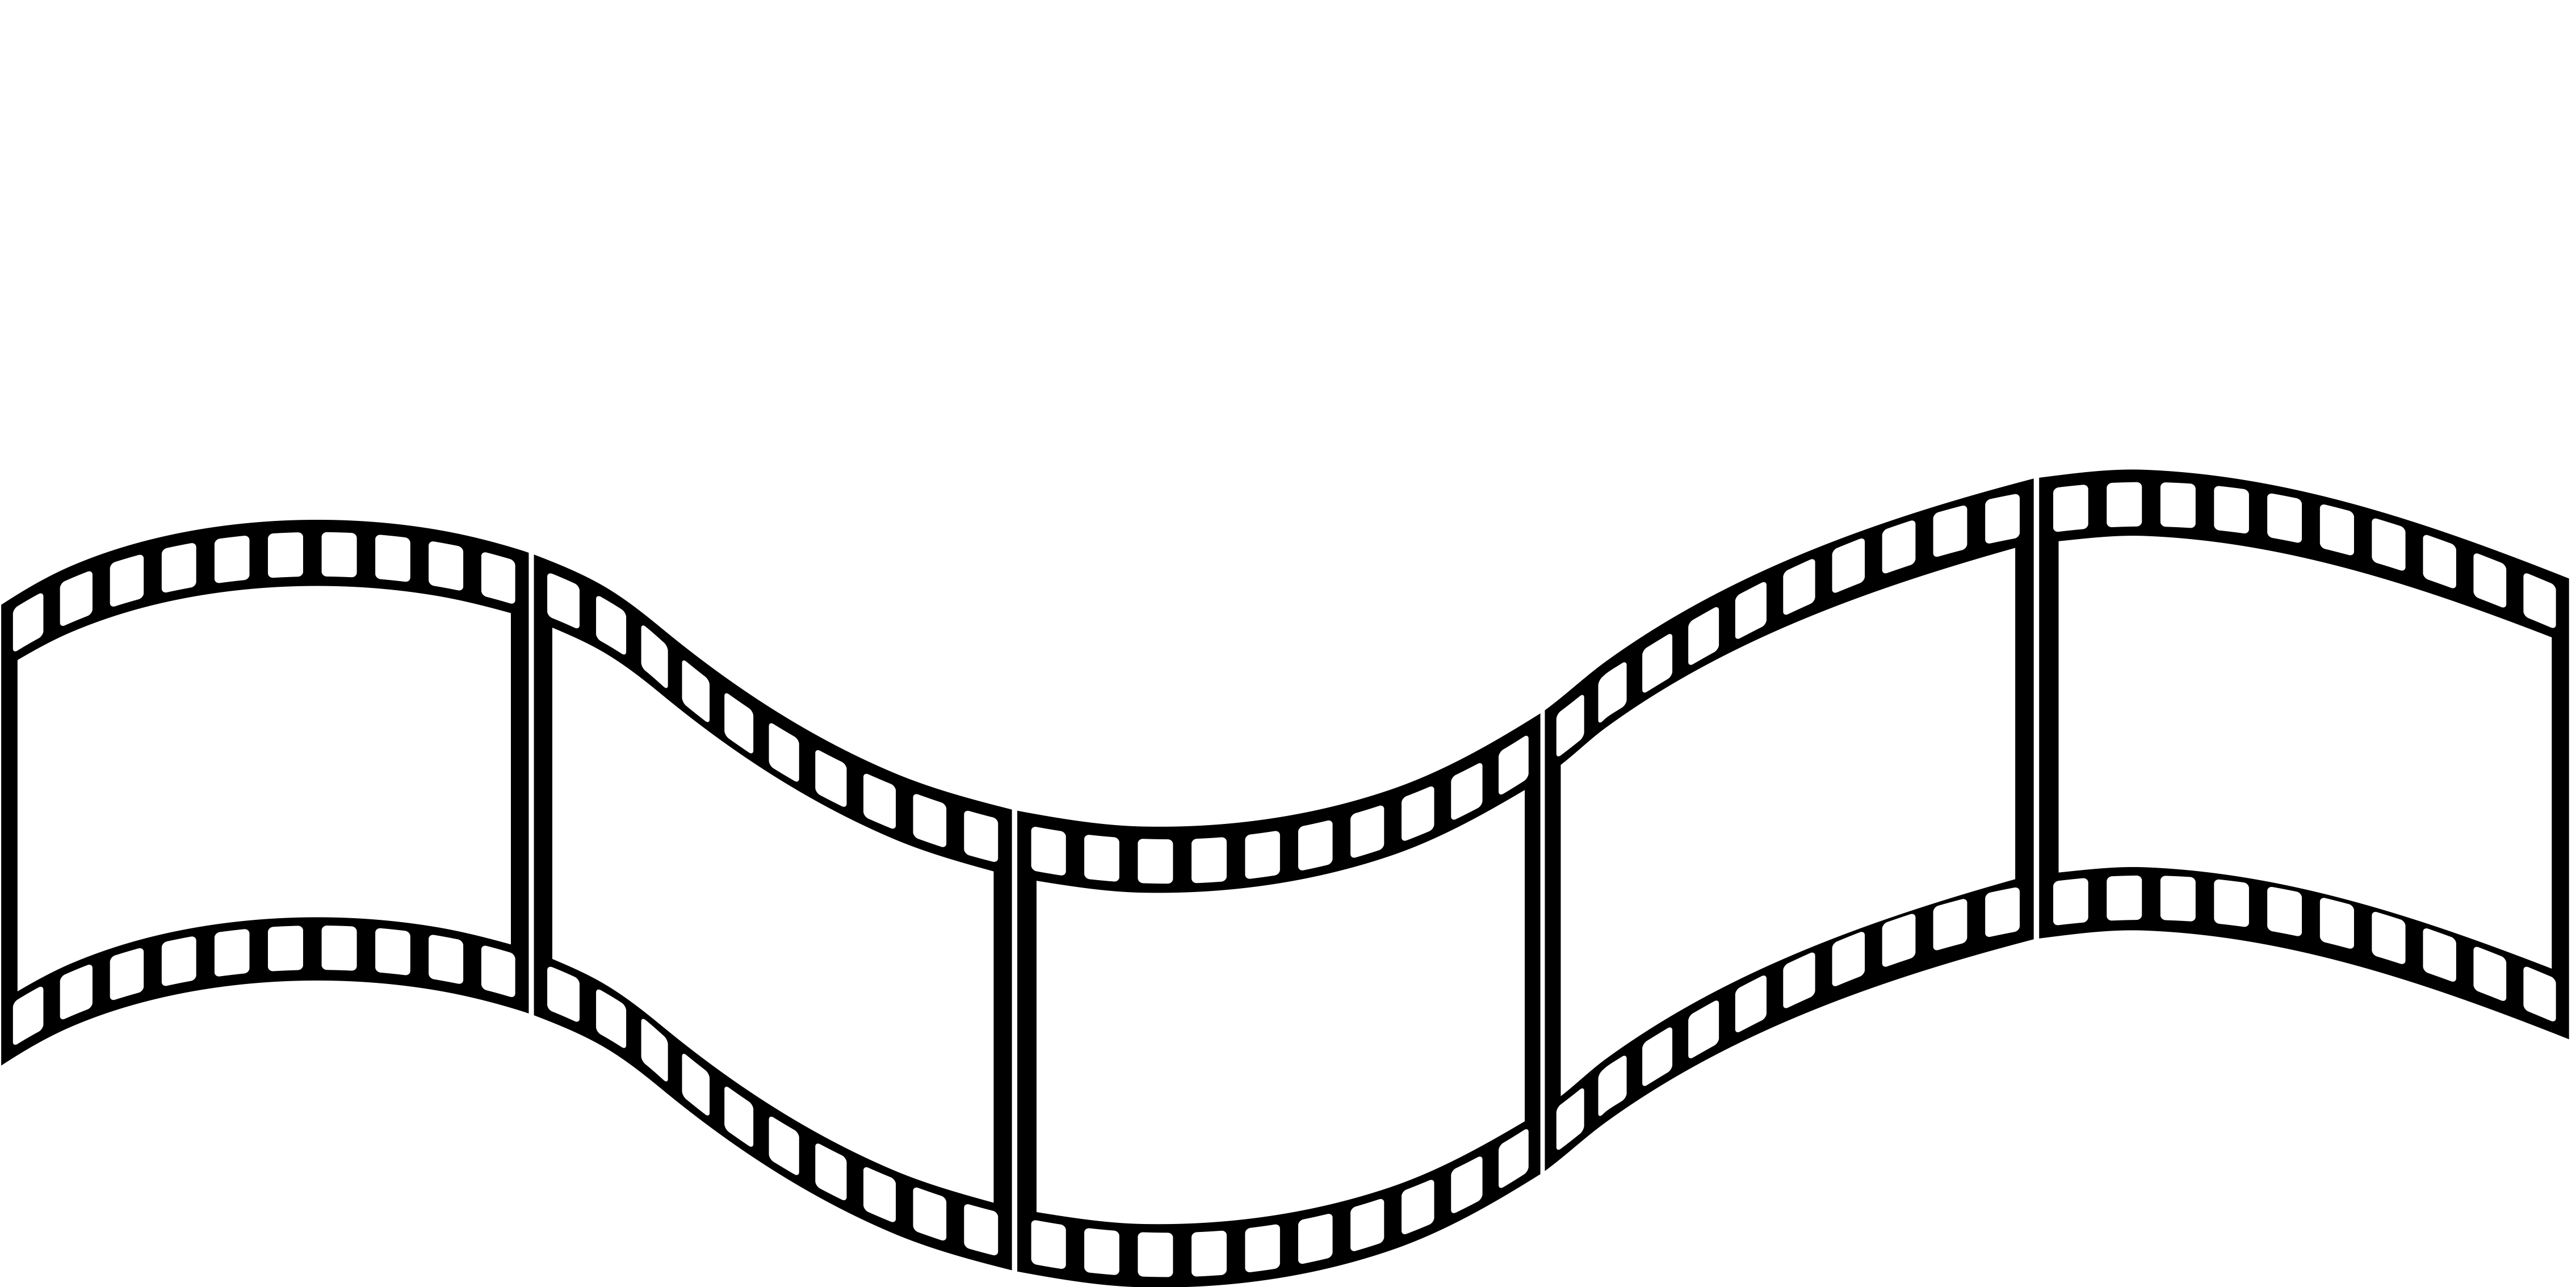 37 Film Reel Png Free Cliparts That You Can Download To You Computer